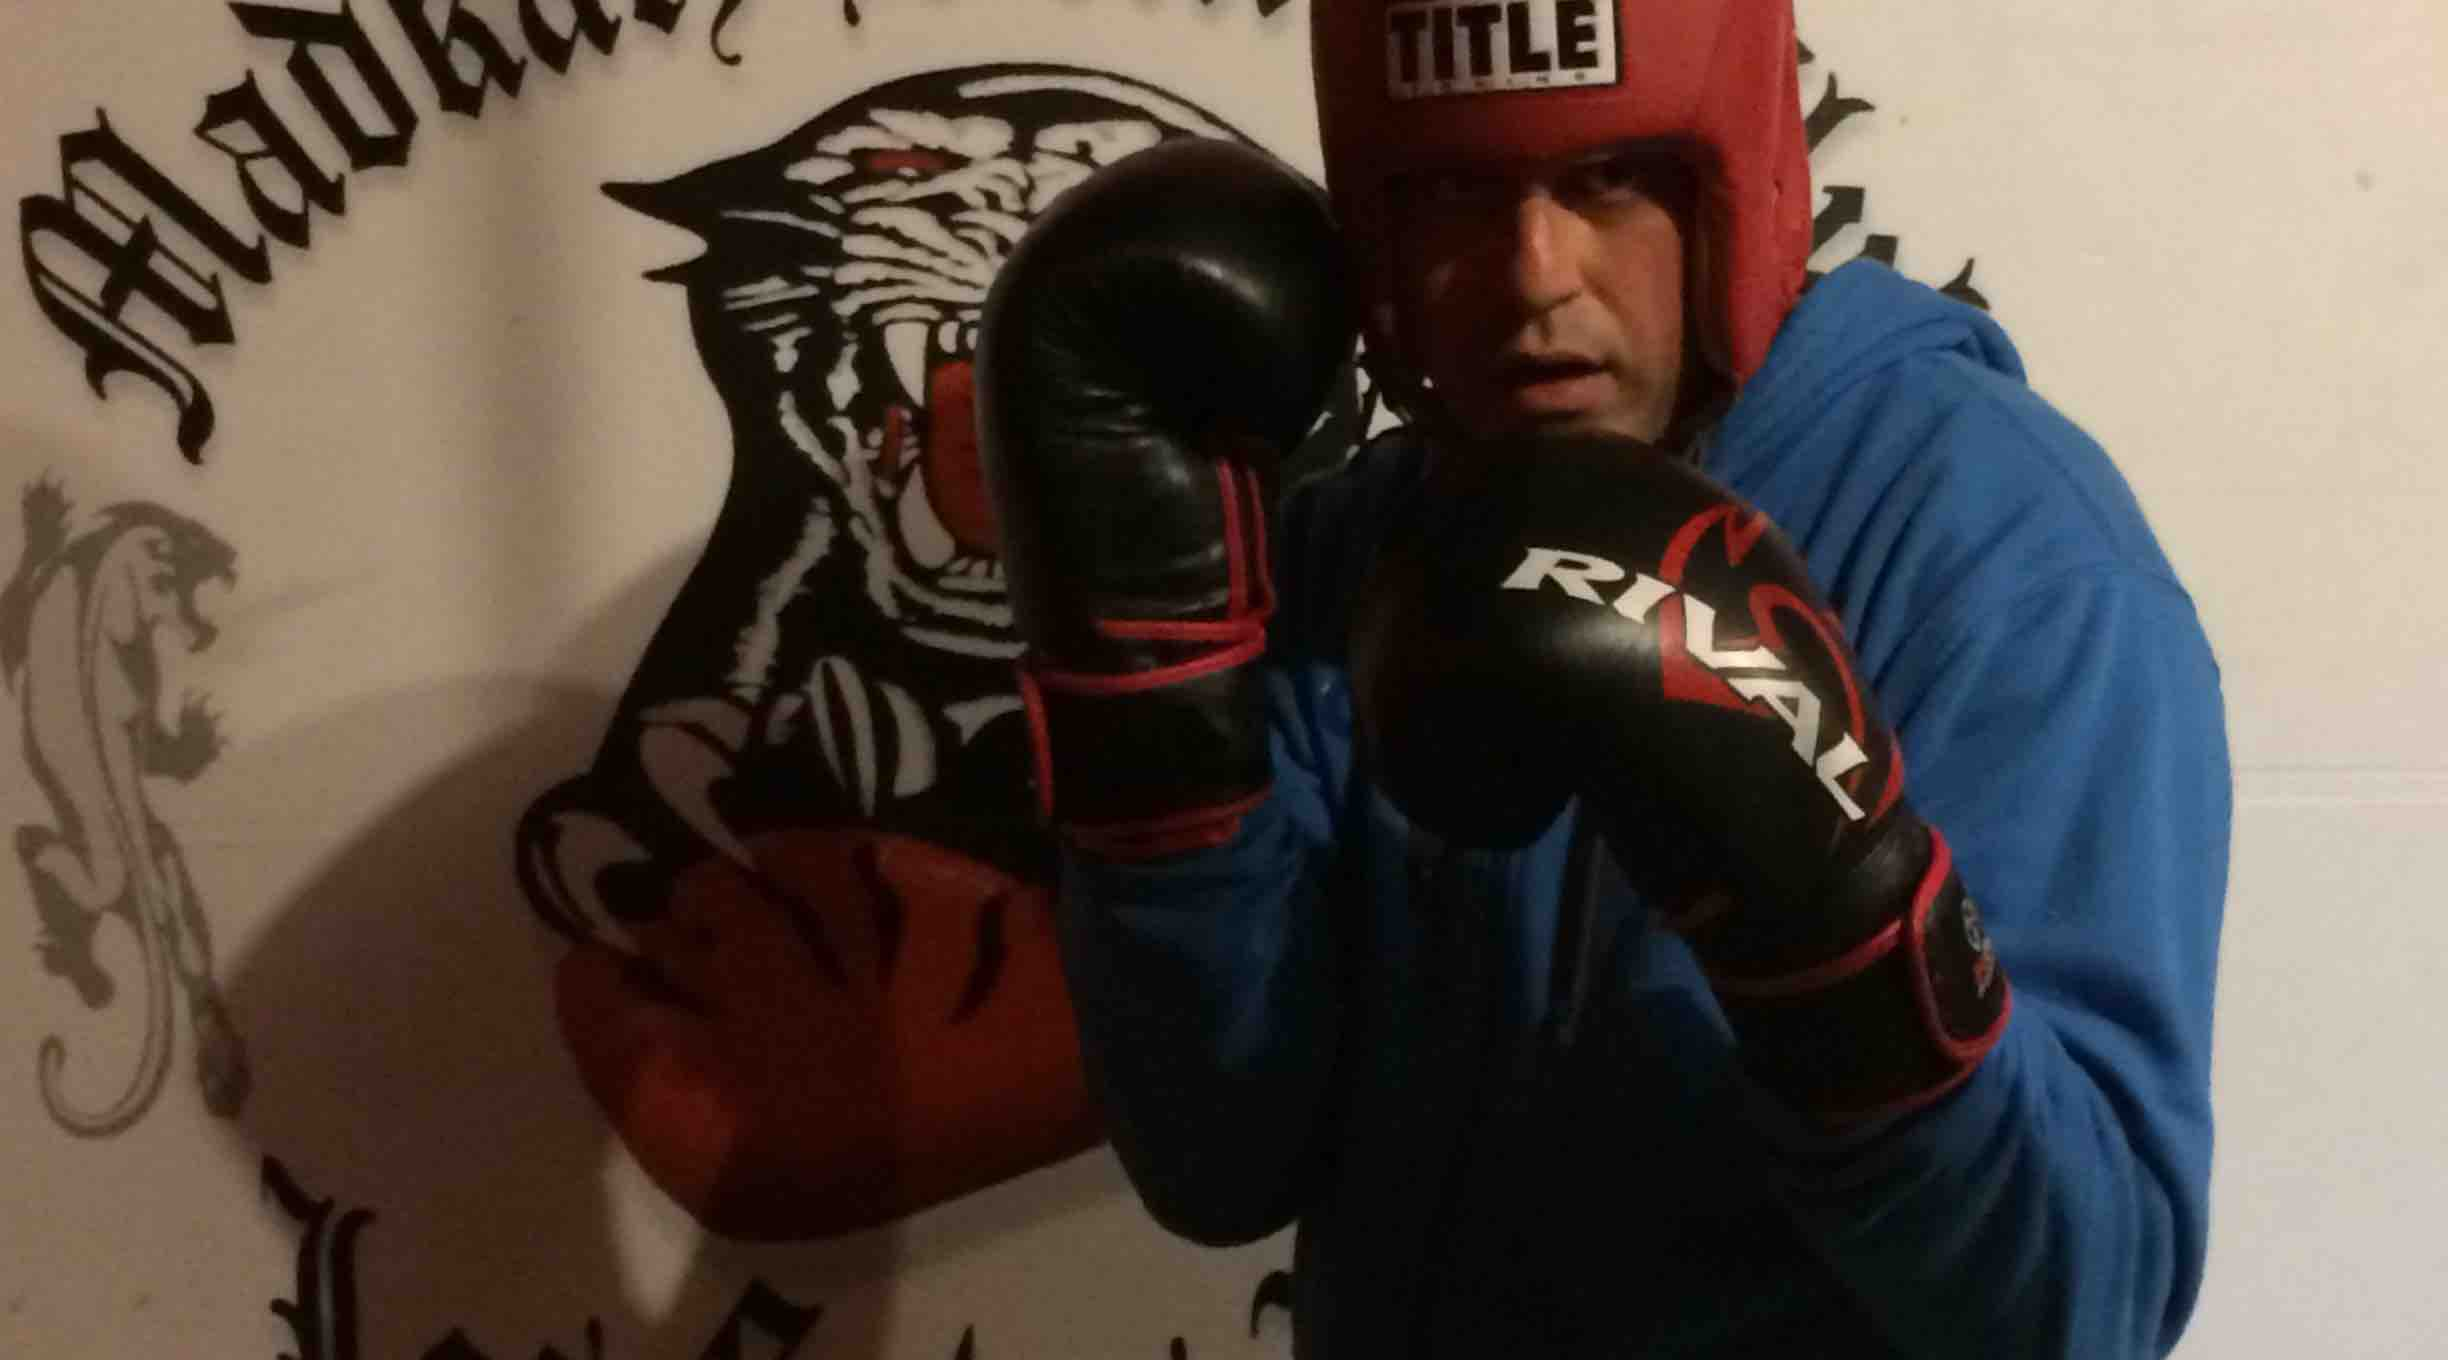 Recommend Kelowna amateur boxing topic, pleasant